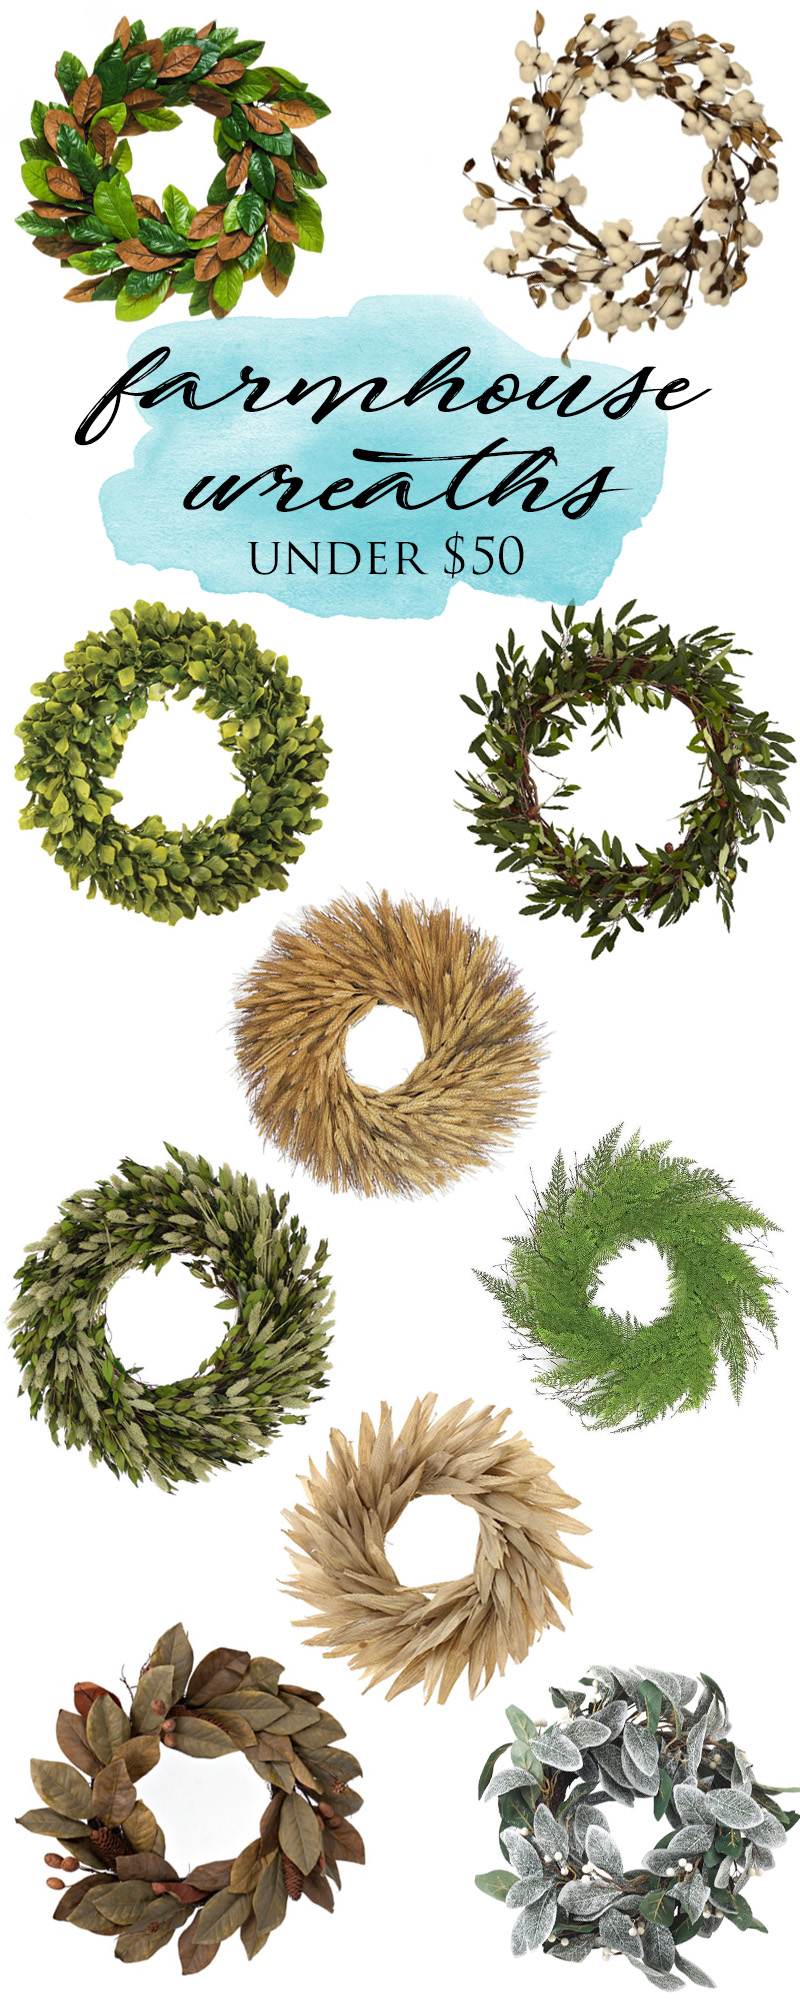 So many gorgeous farmhouse wreaths under $50!